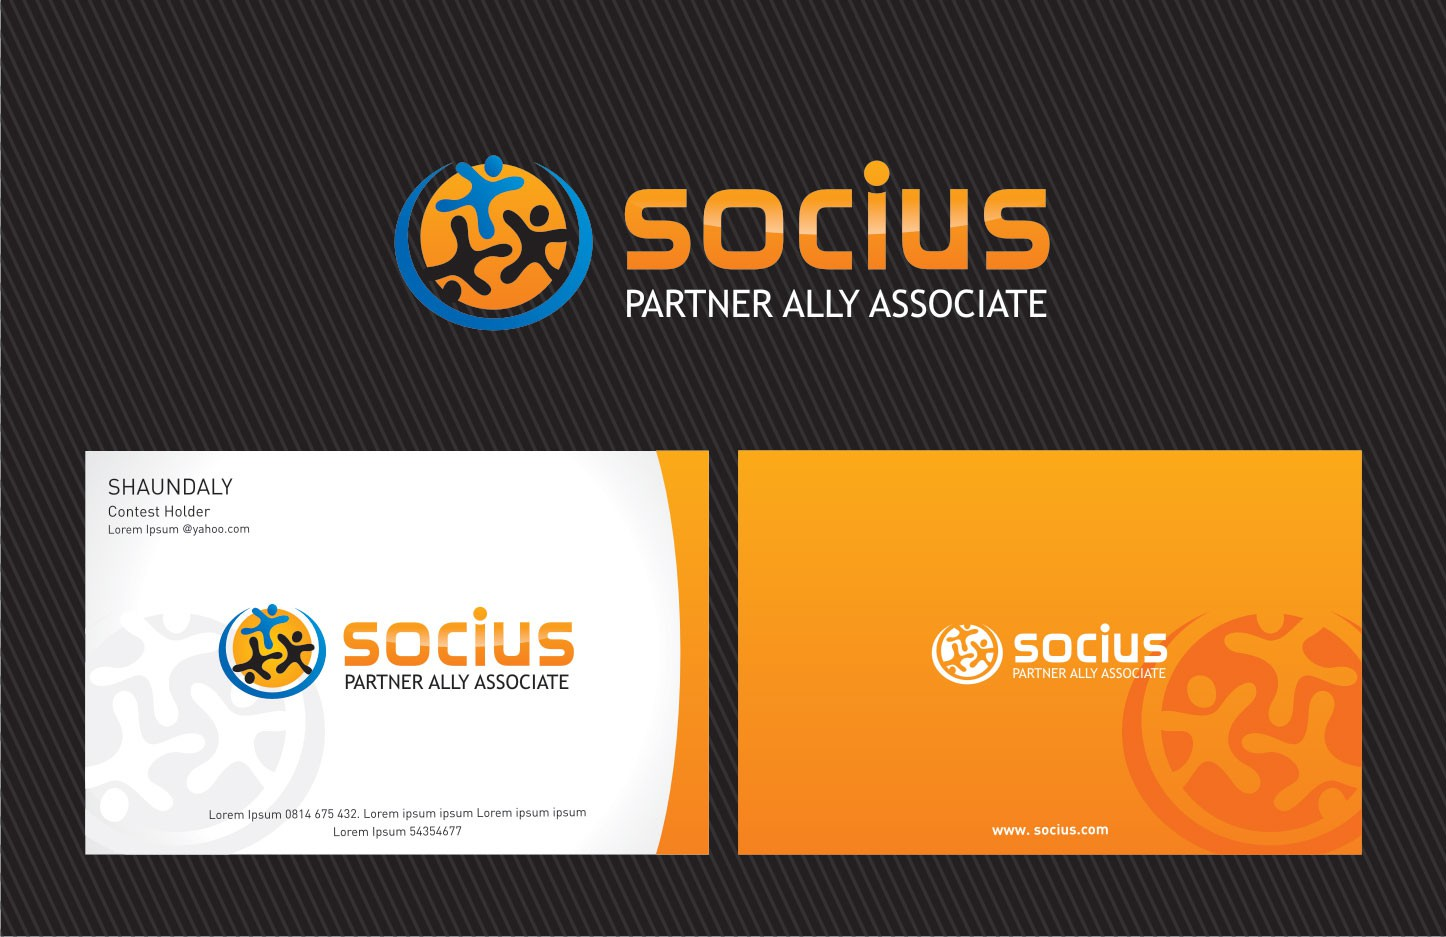 Help Socius with a new logo